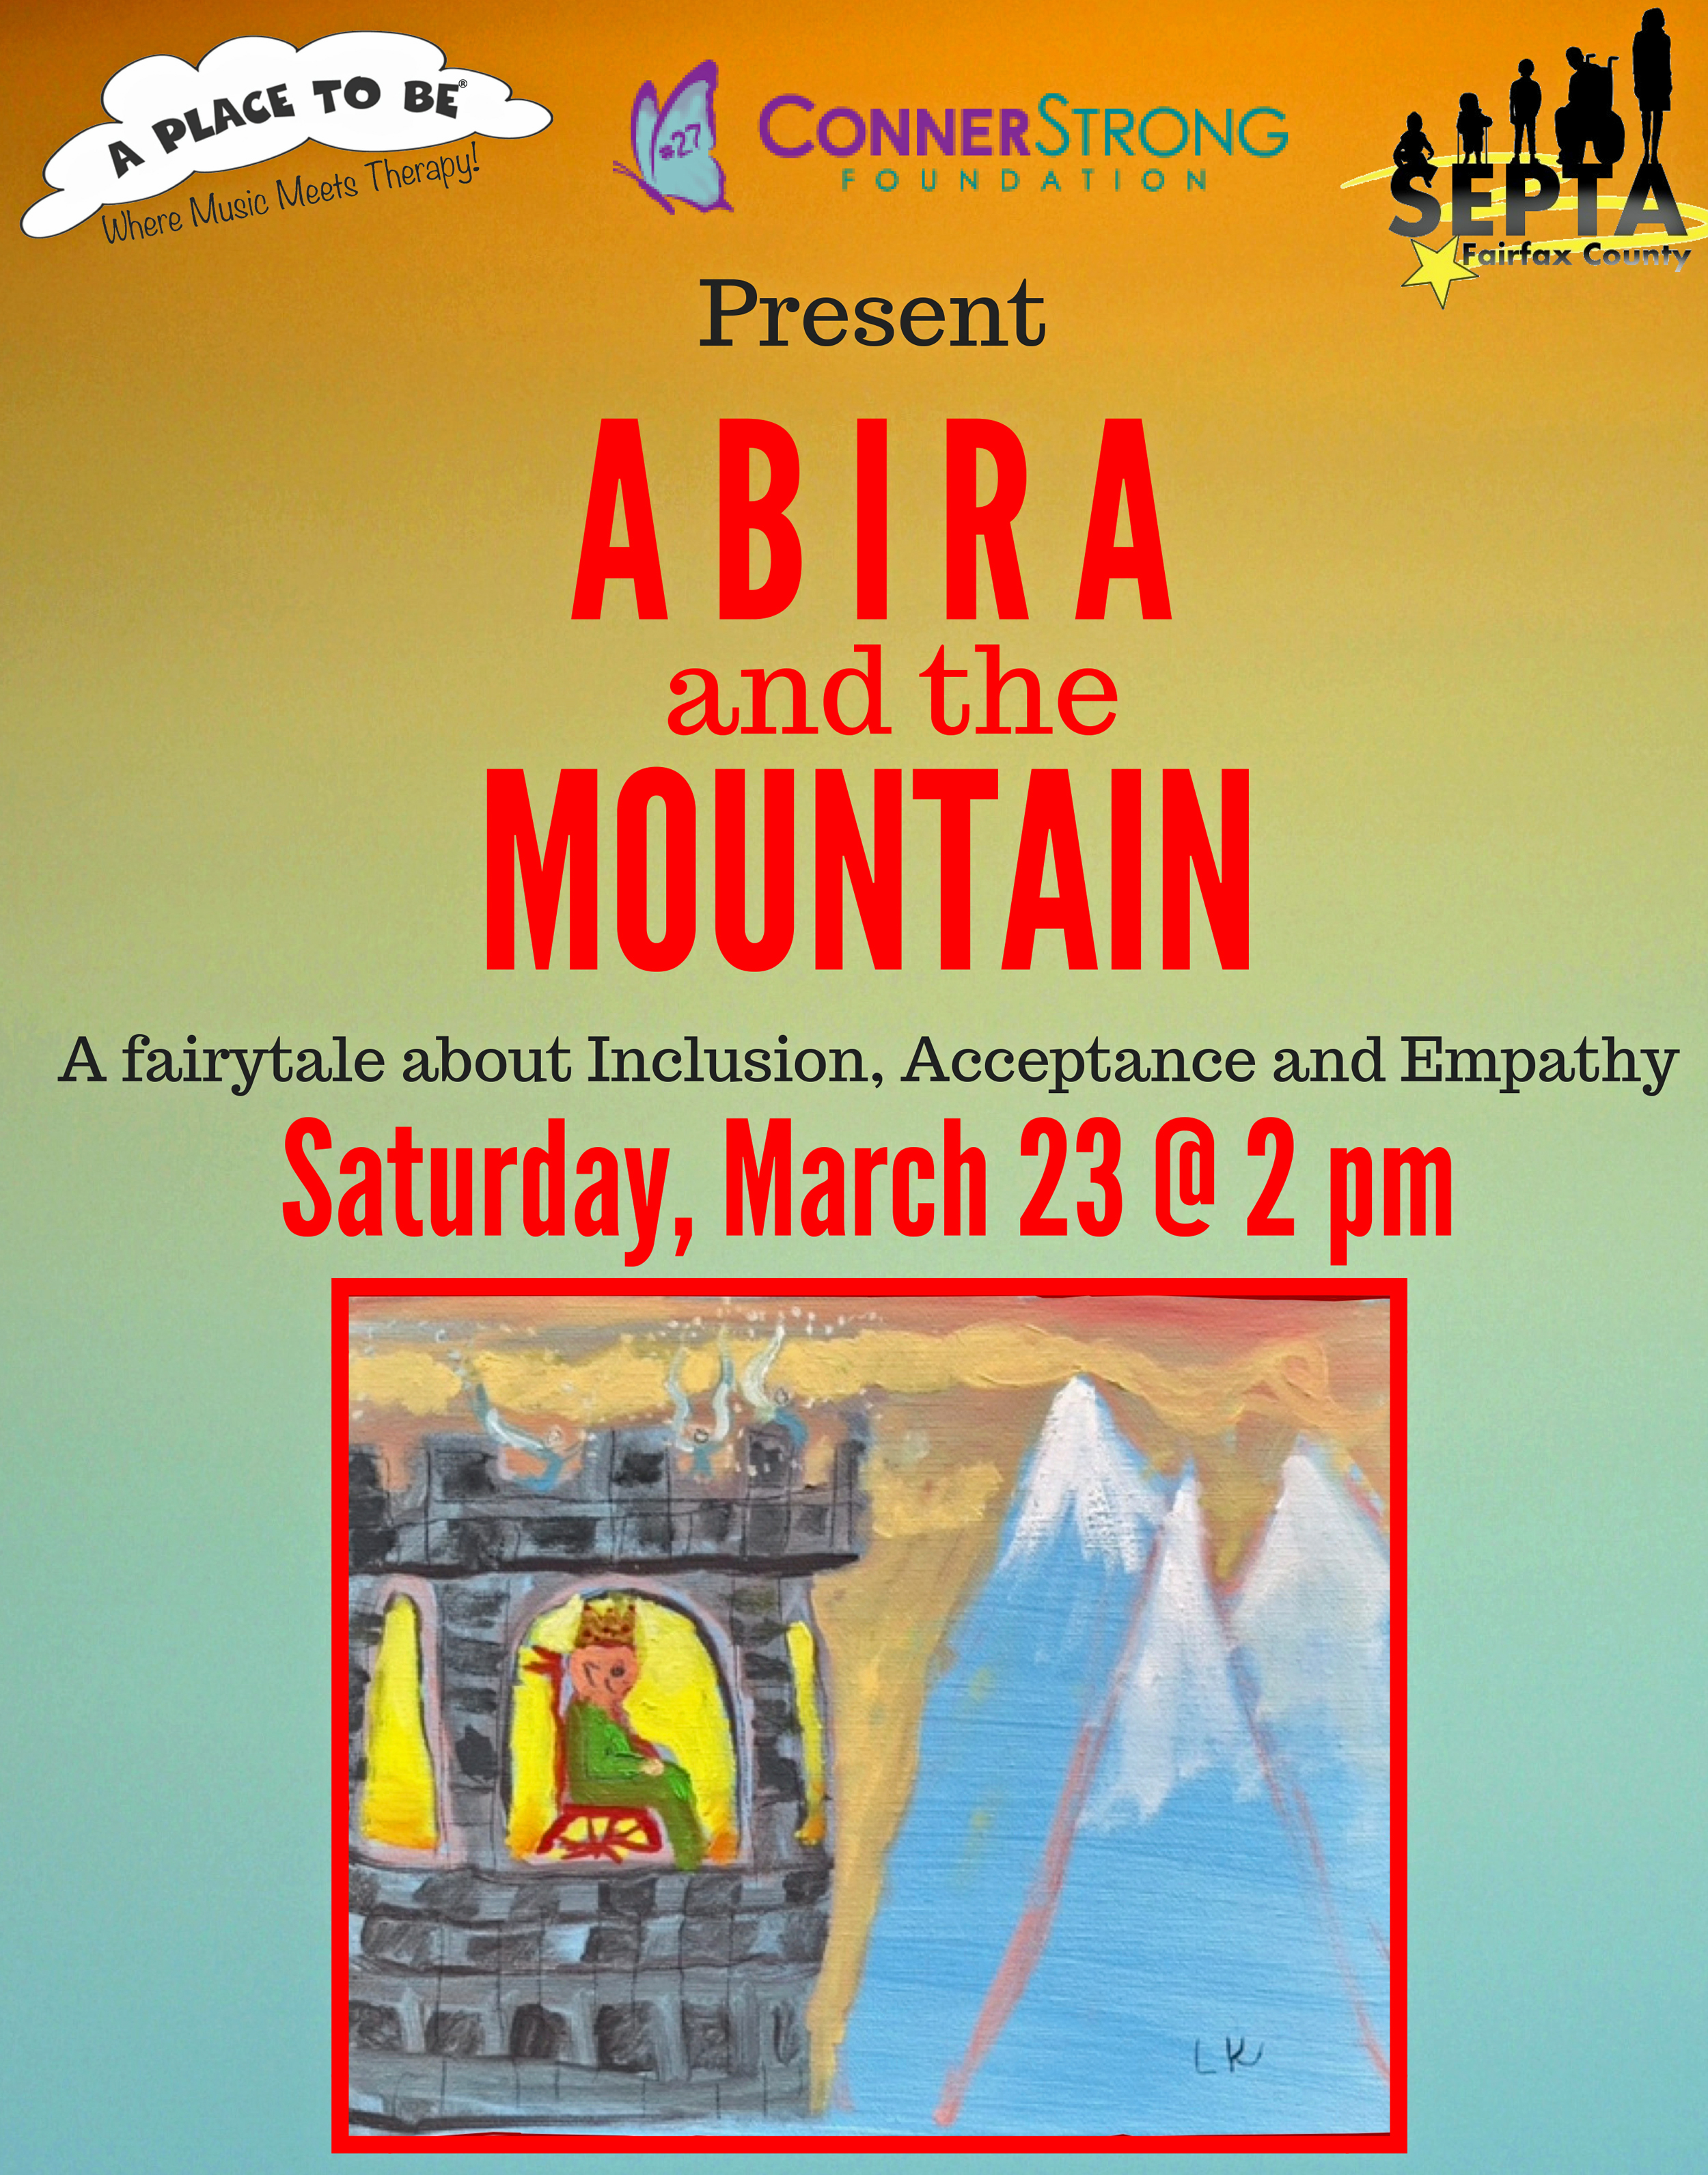 Abira-Poster-with-URL.jpg